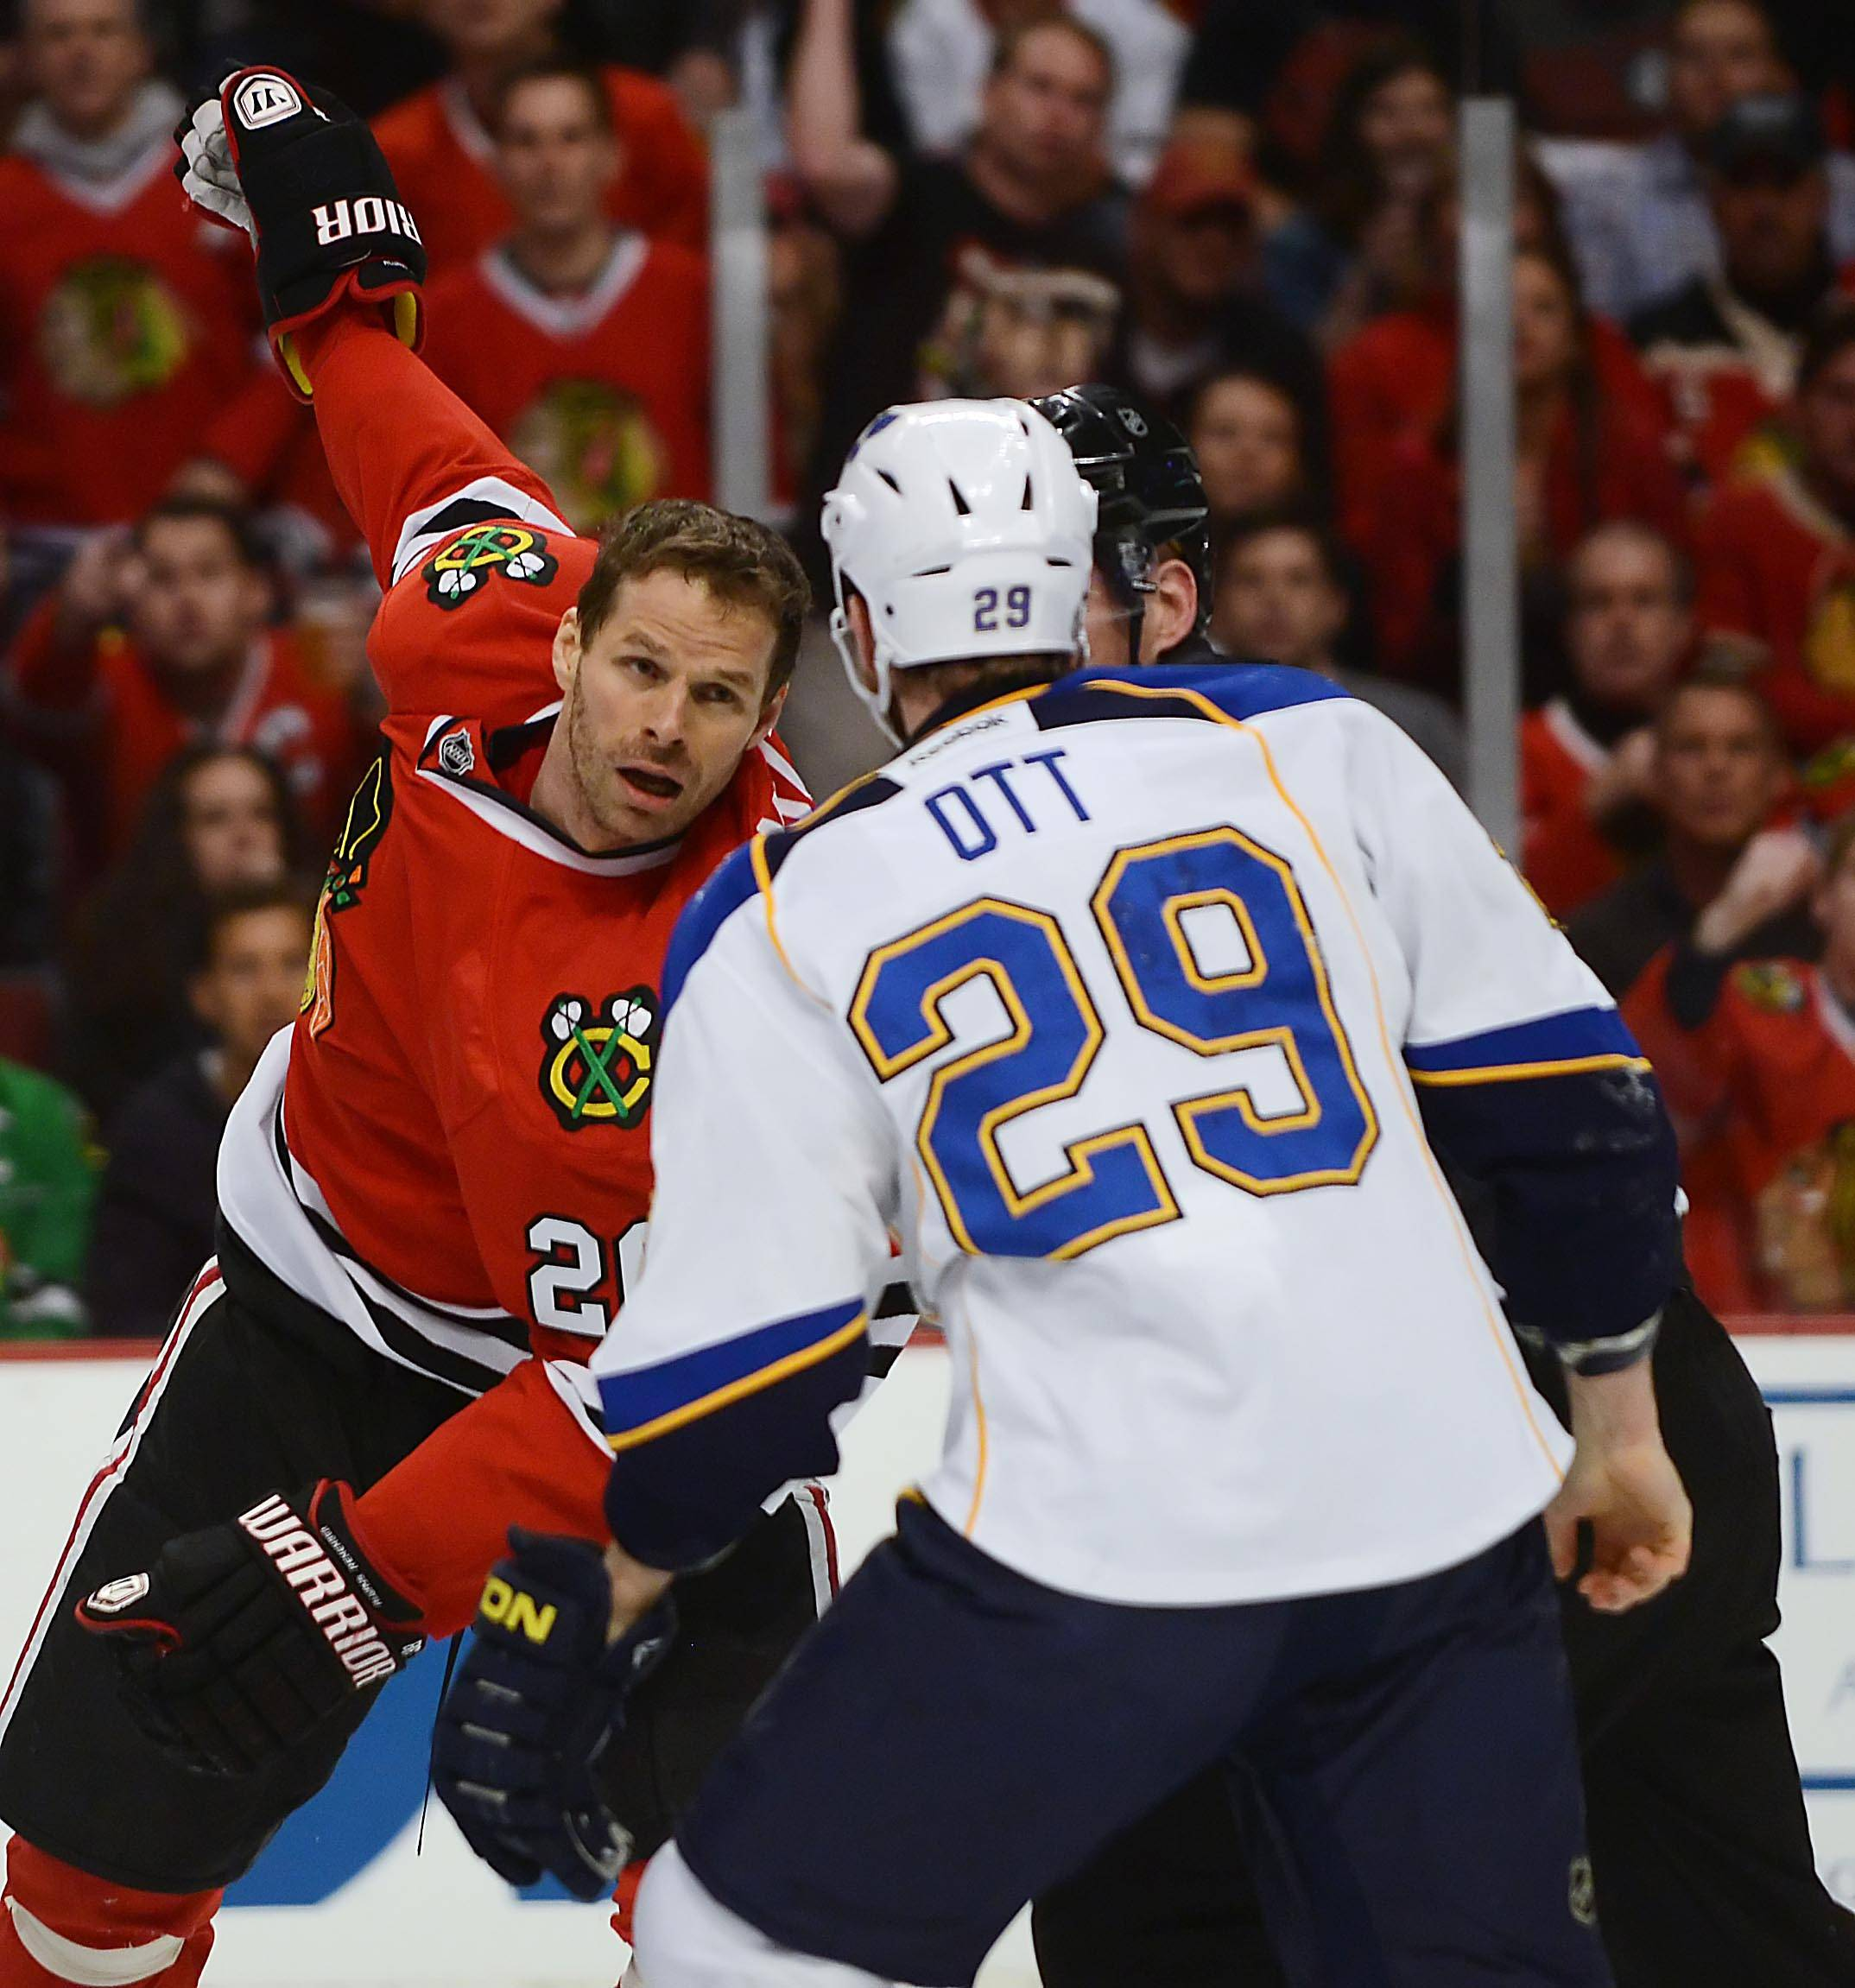 Chicago Blackhawks center Michal Handzus and St. Louis Blues center Steve Ott fight.